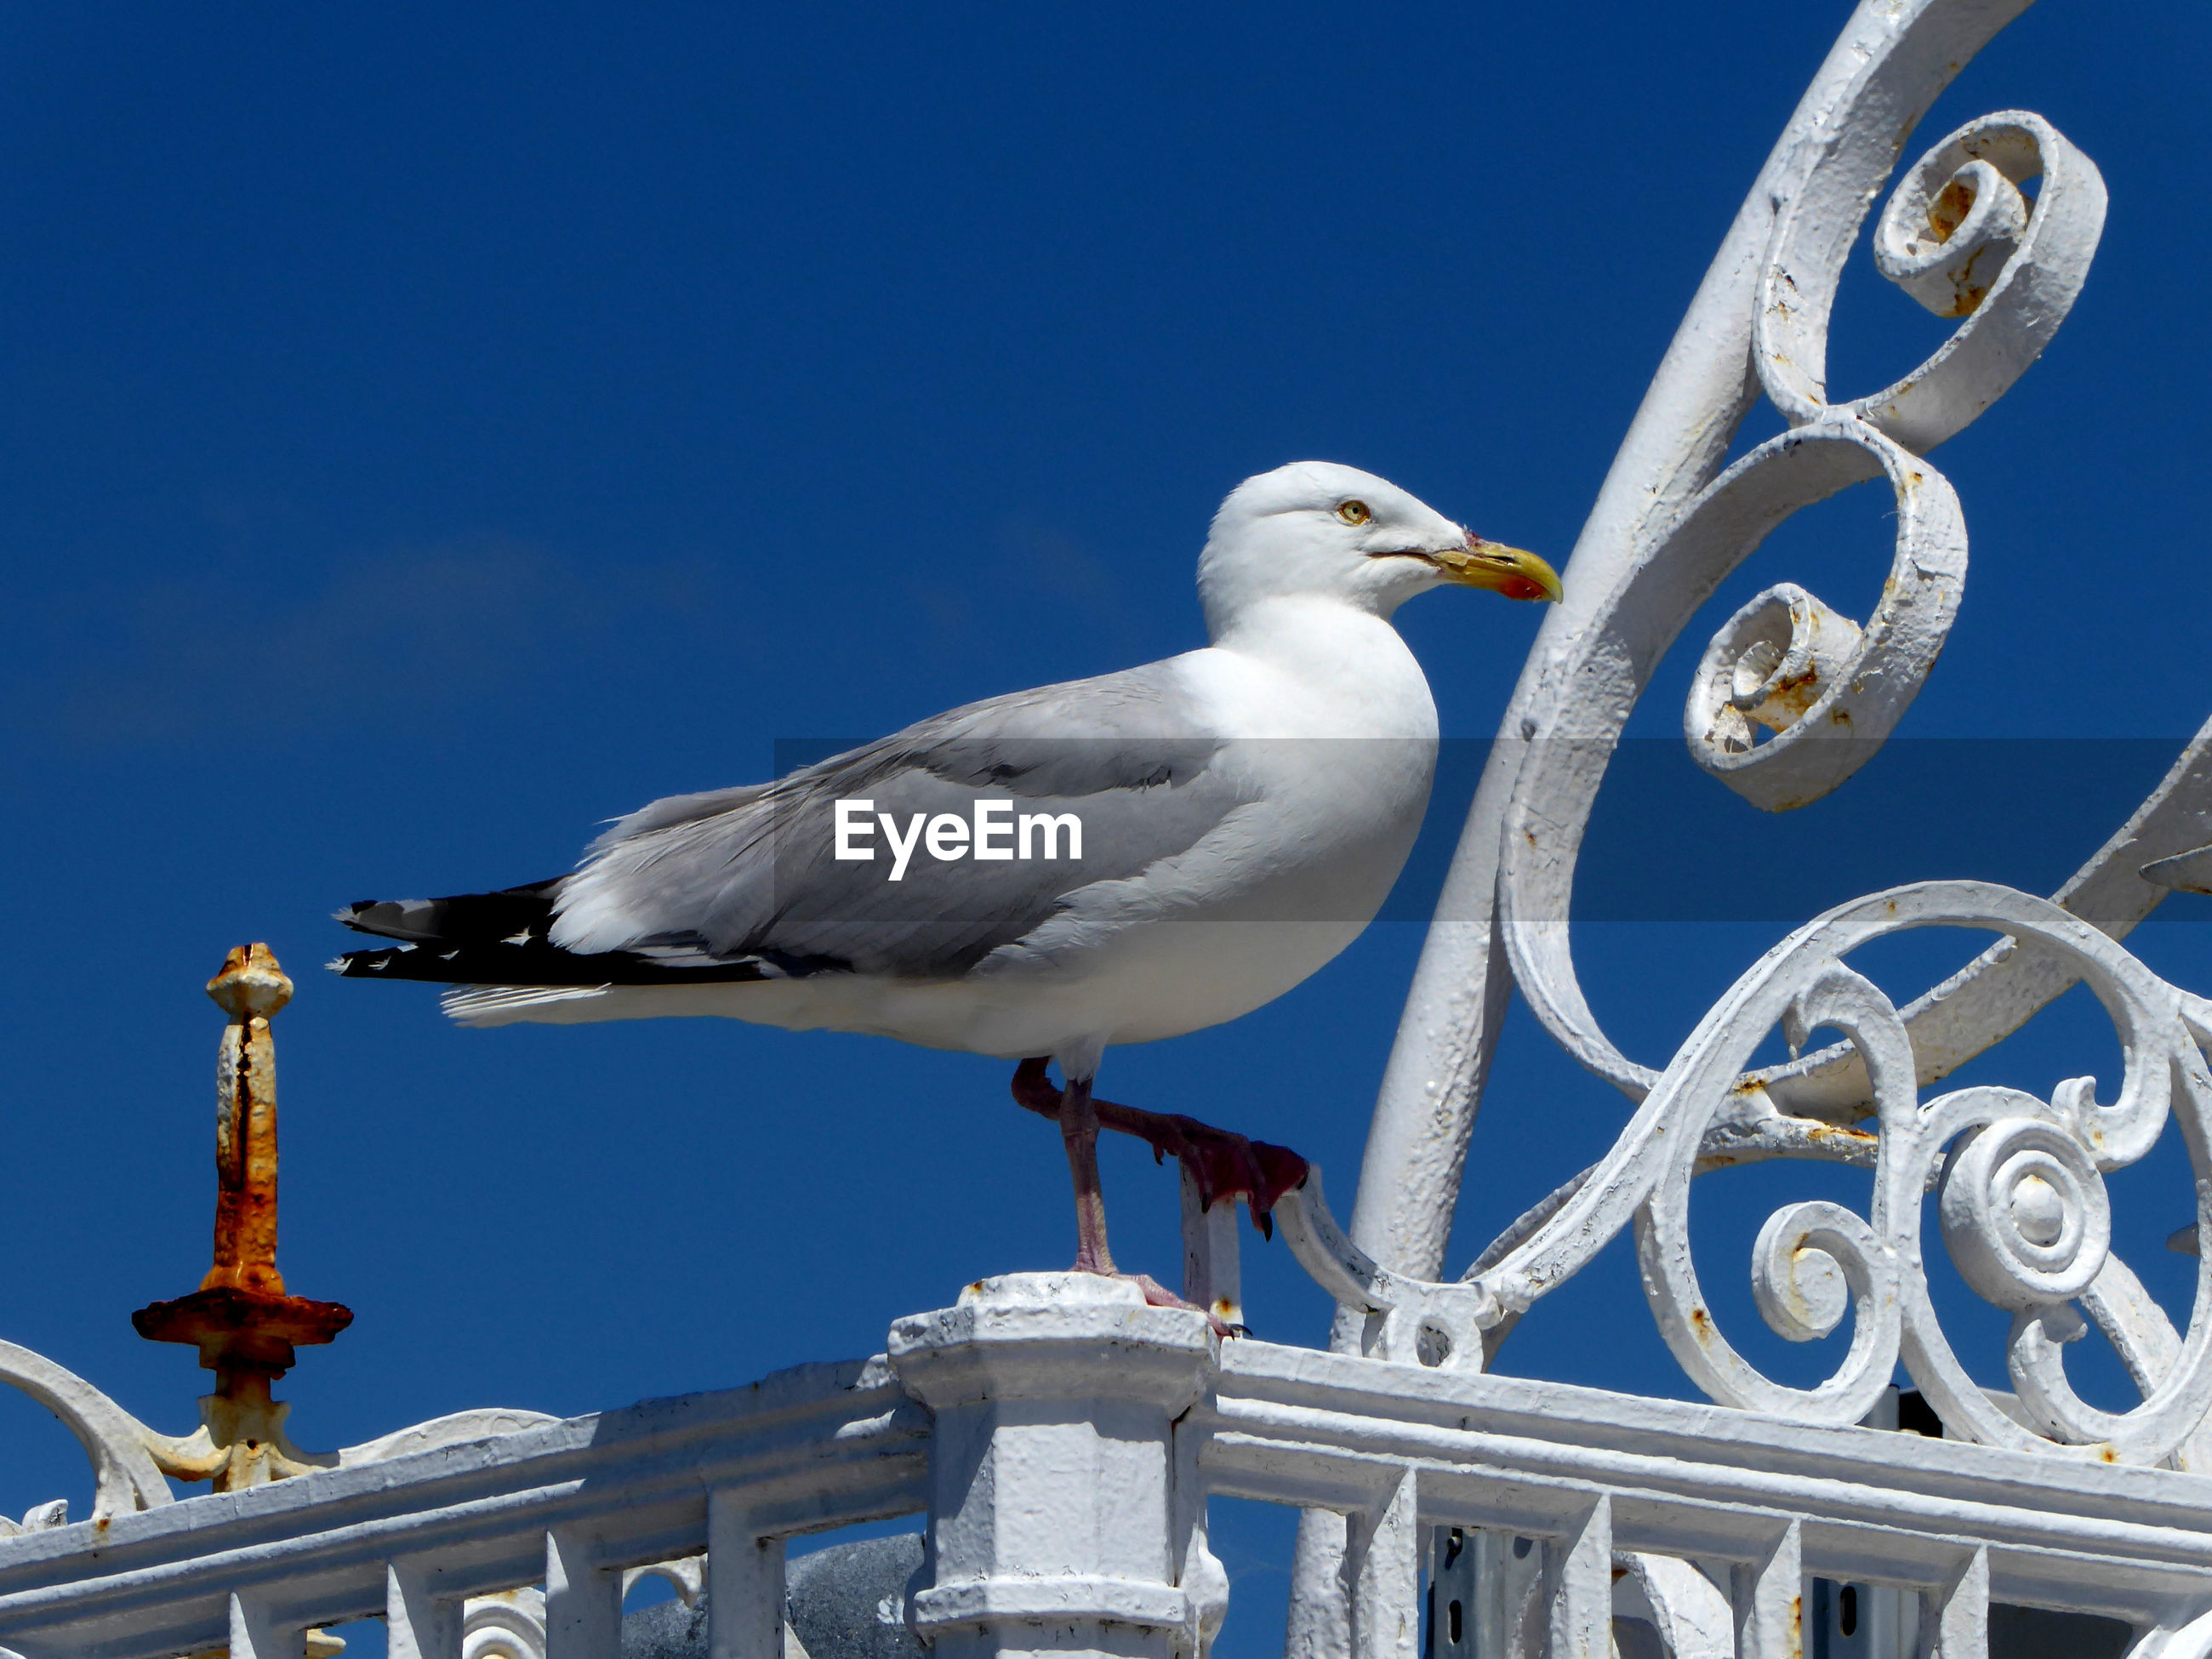 LOW ANGLE VIEW OF SEAGULL PERCHING ON METALLIC STRUCTURE AGAINST SKY